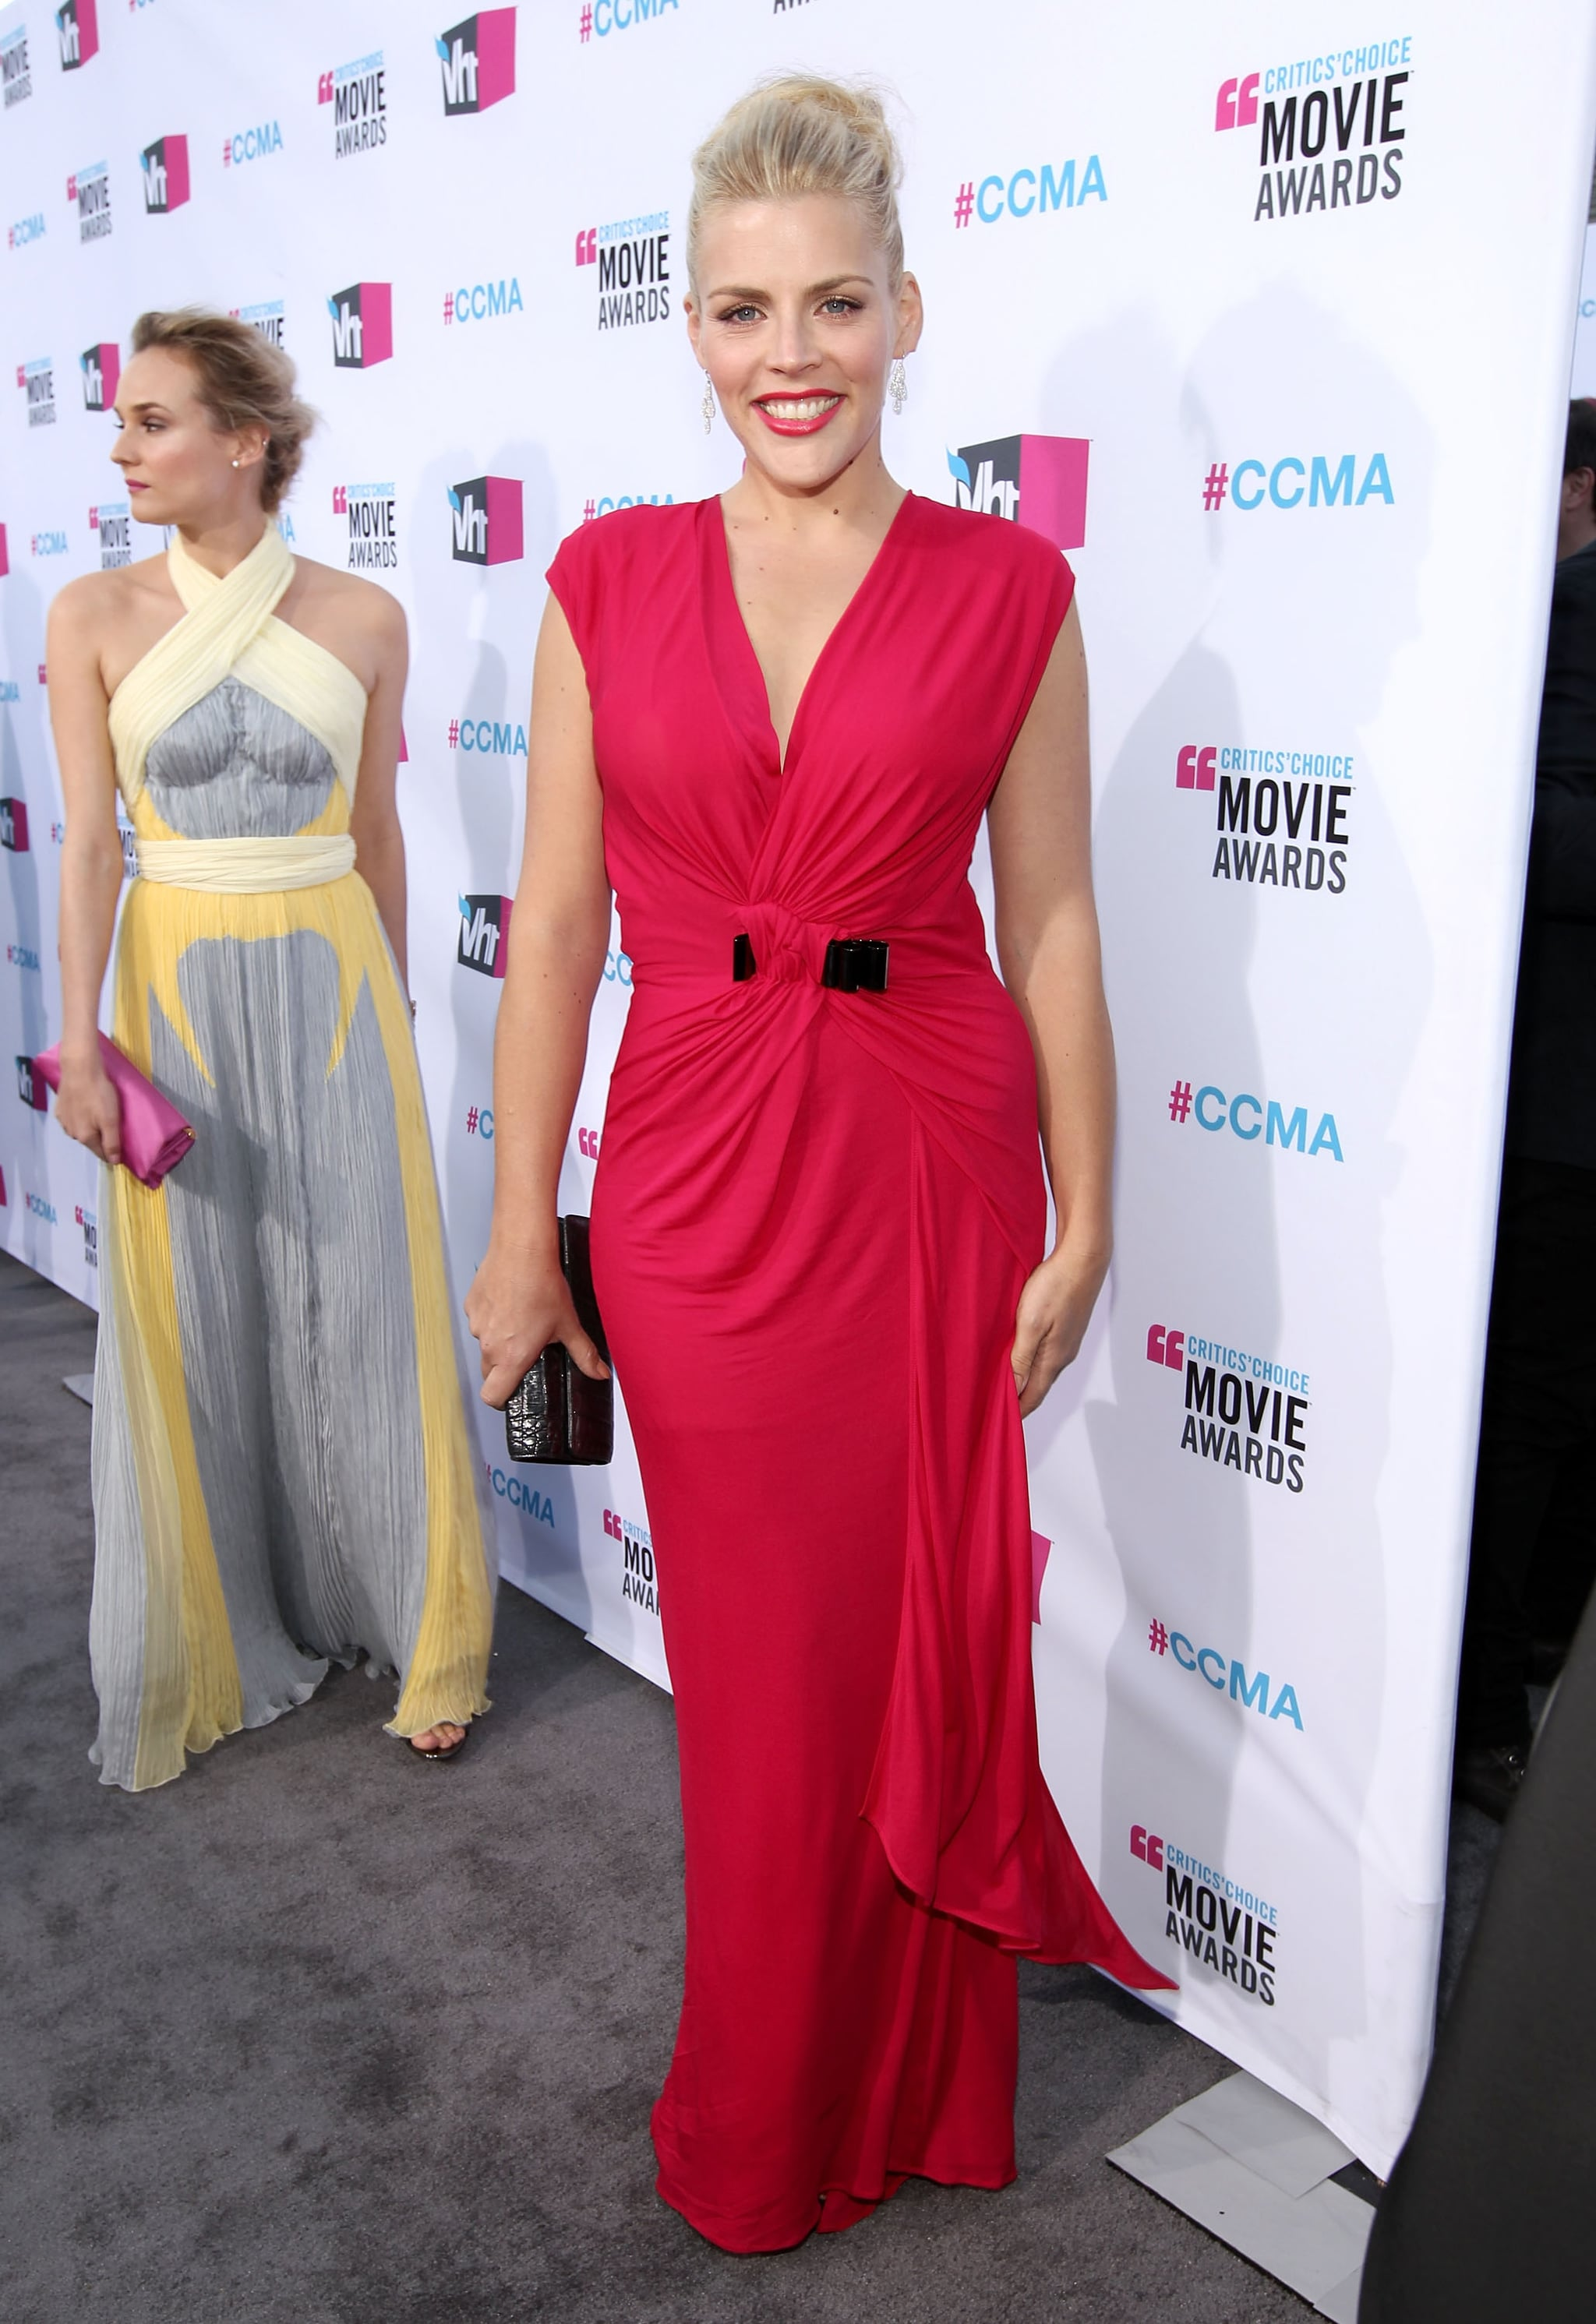 Busy Philipps lead the way on the red carpet for Diane Kruger at the 2012 Critics' Choice Movie Awards.